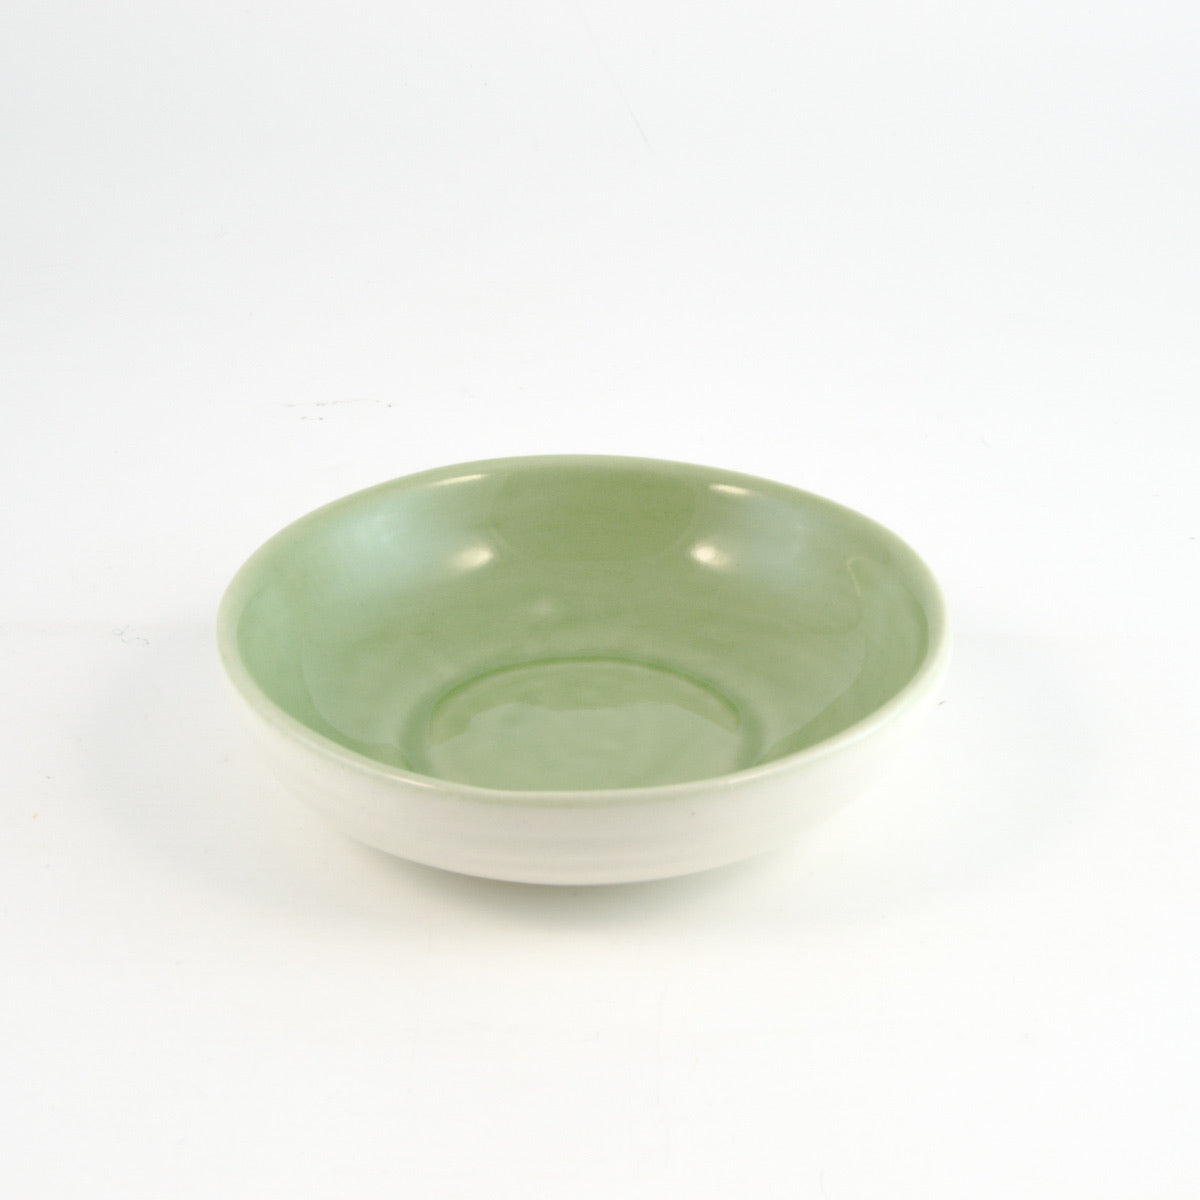 Snack Bowl Set of 4